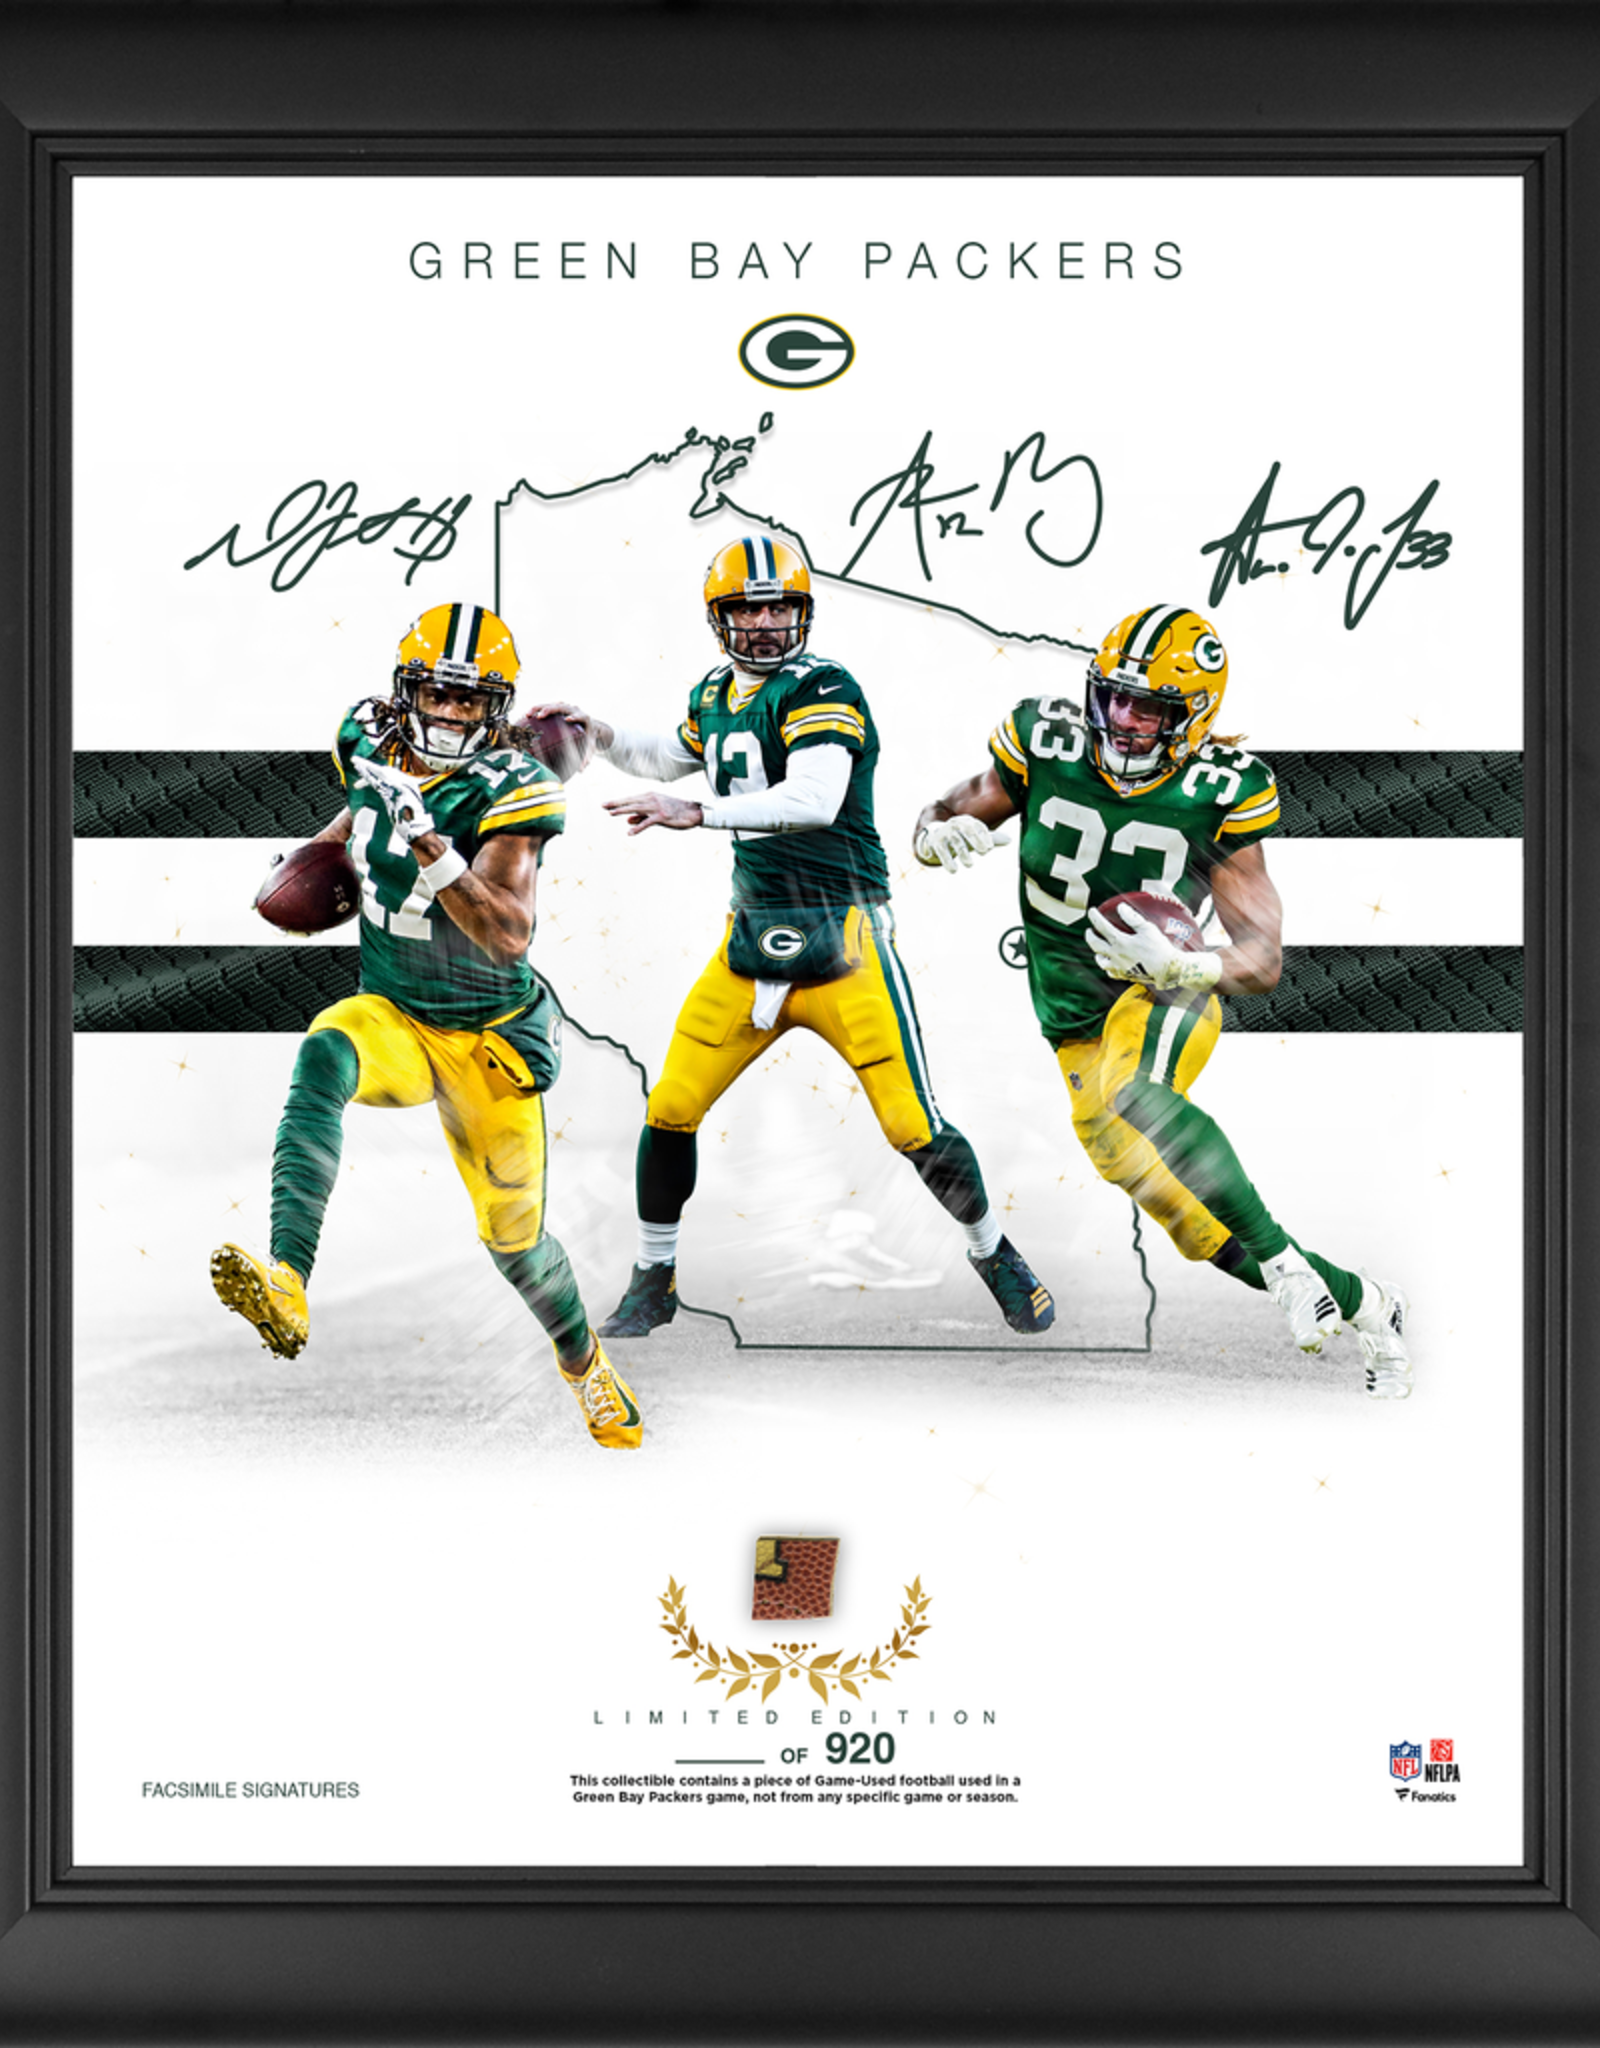 "MOUNTED MEMORIES Green Bay Packers LIMITED EDITION Framed 15"" x 17"" Franchise Foundations Collage with a Piece of Game Used Football"